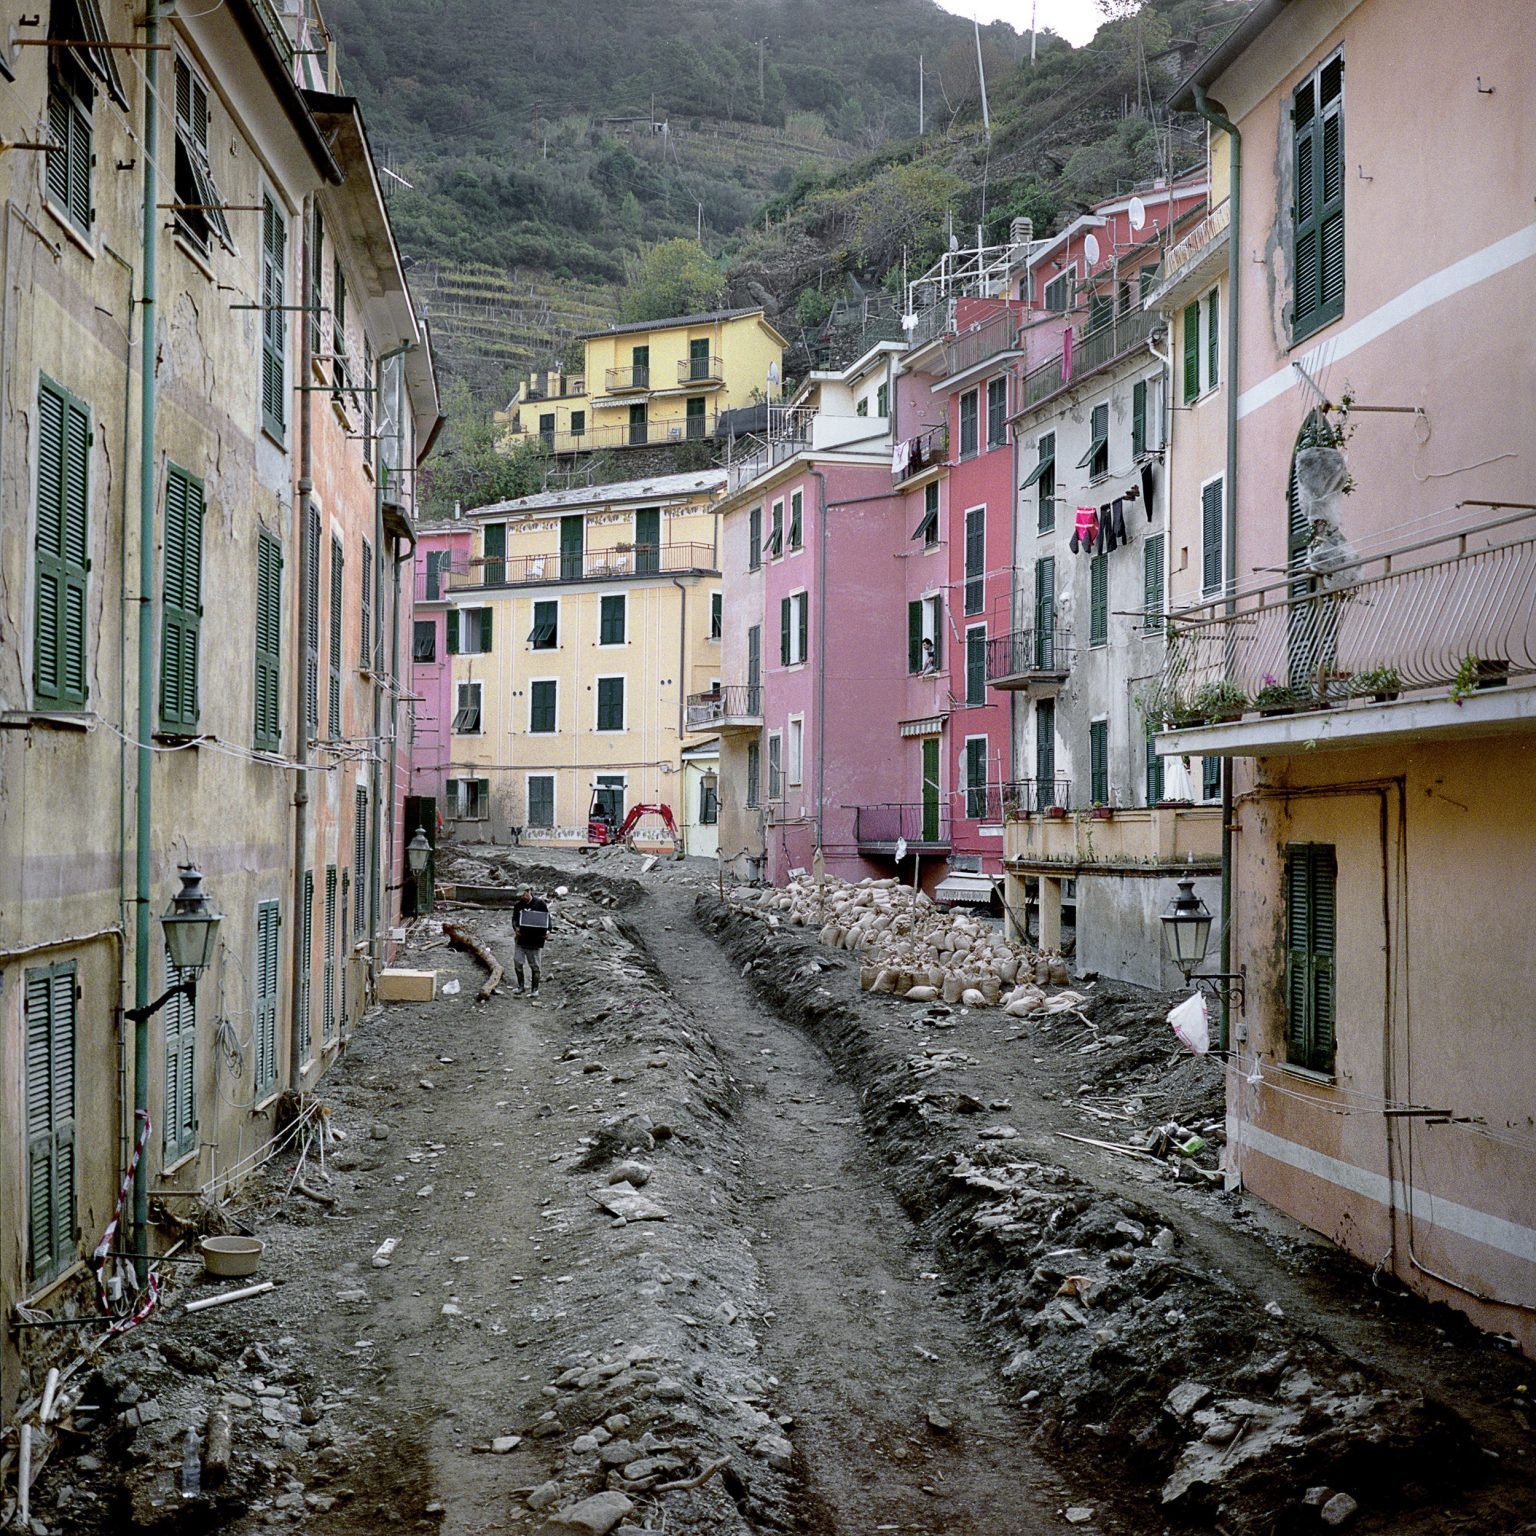 Vernazza, November 2011. After the intense rain the town was hit by a severe flood that caused much damage to the buildings and economic activities. The main road in Vernazza, covered by 4 meters of mud.